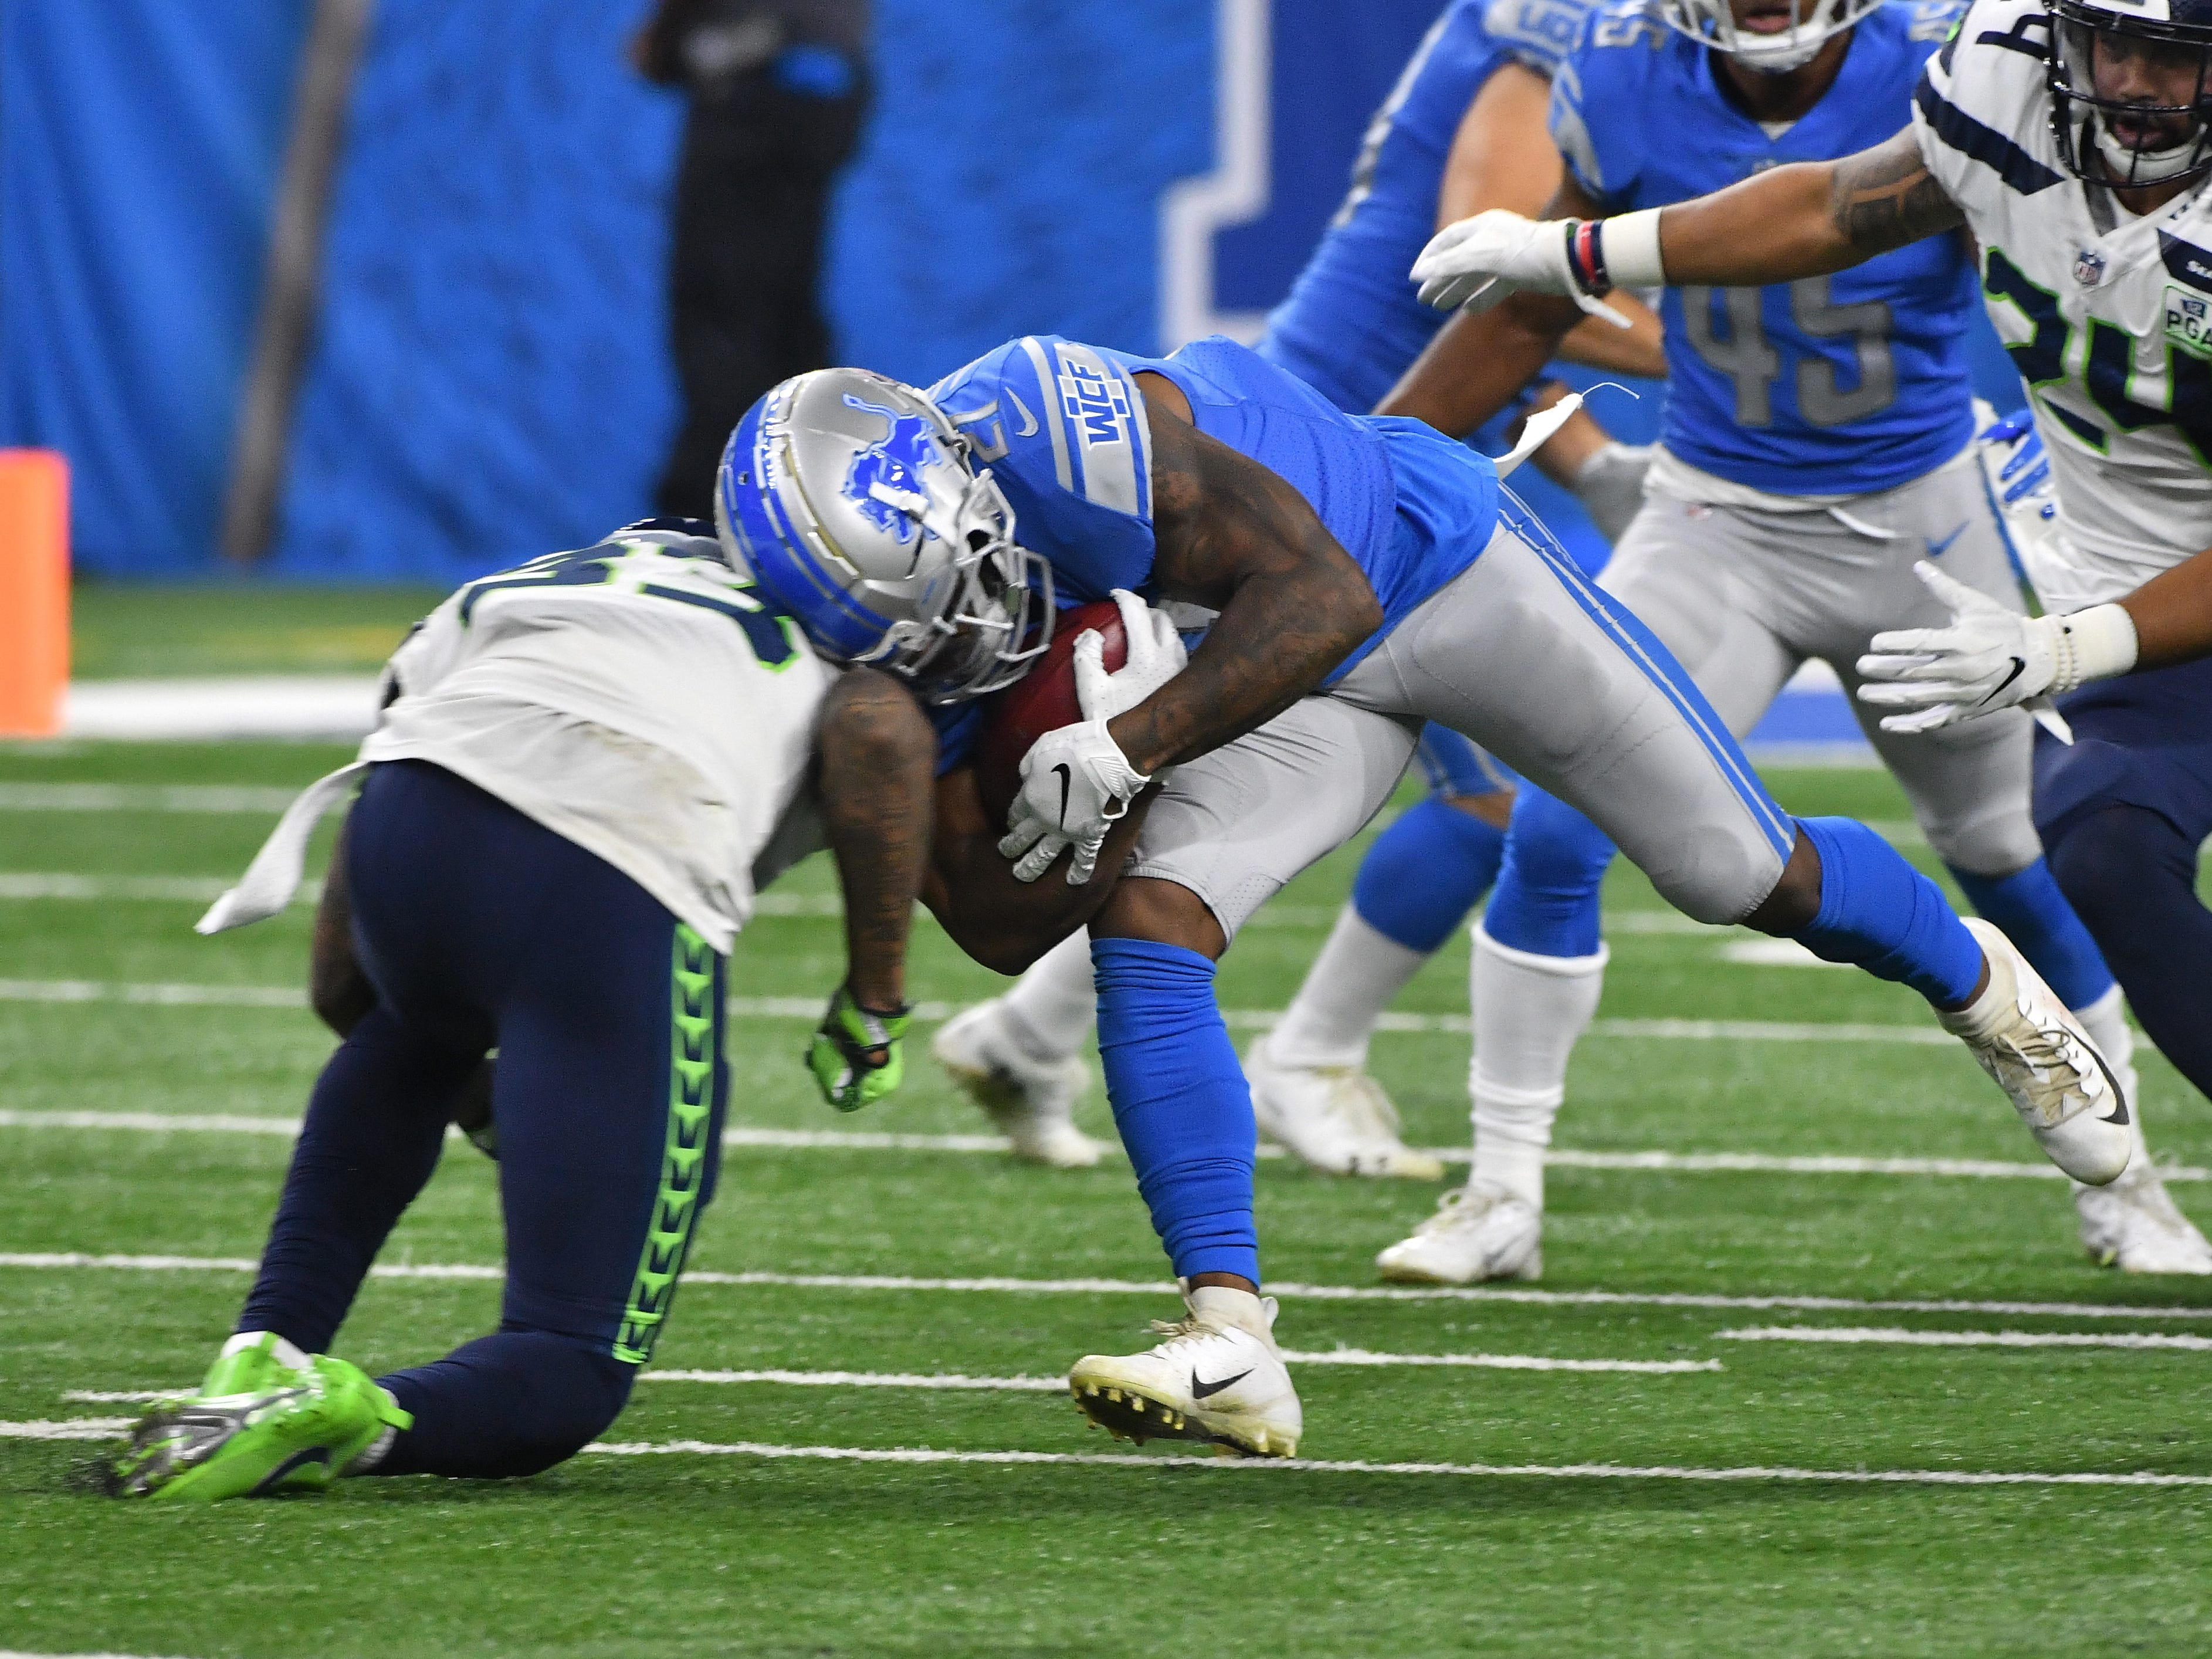 After a Seattle touchdown, Lions' Ameer Abdullah fumbles the ball on a kickoff return, during a hit by Seahawks' Cedric Thompson, which Seattle recovered in the second quarter.